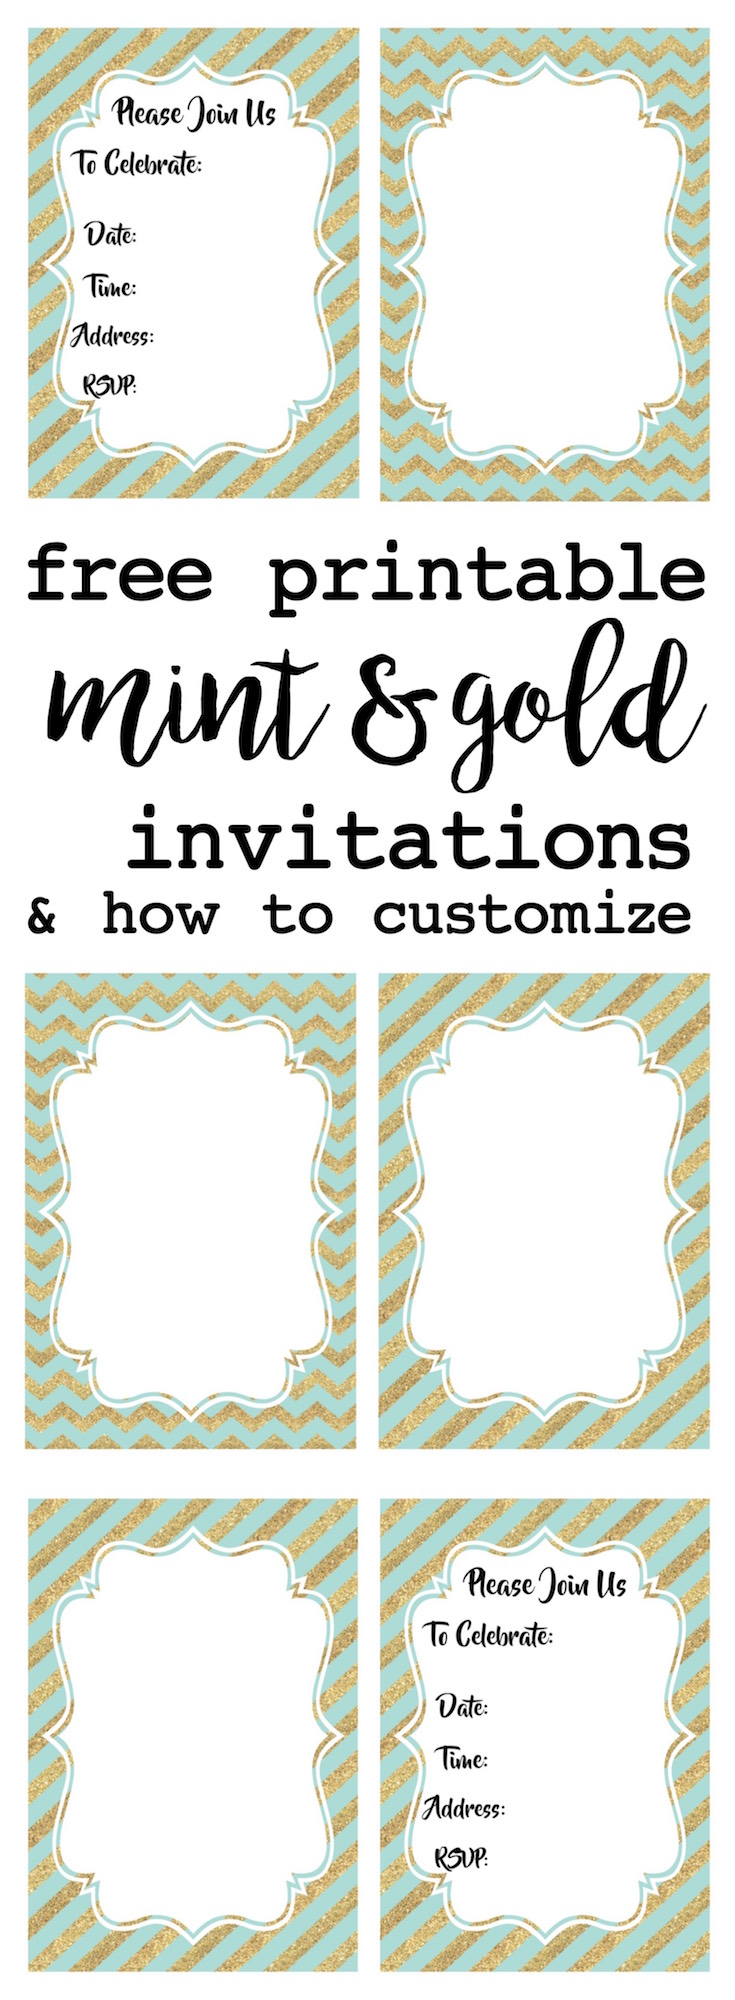 Hilaire image pertaining to printable invitation paper